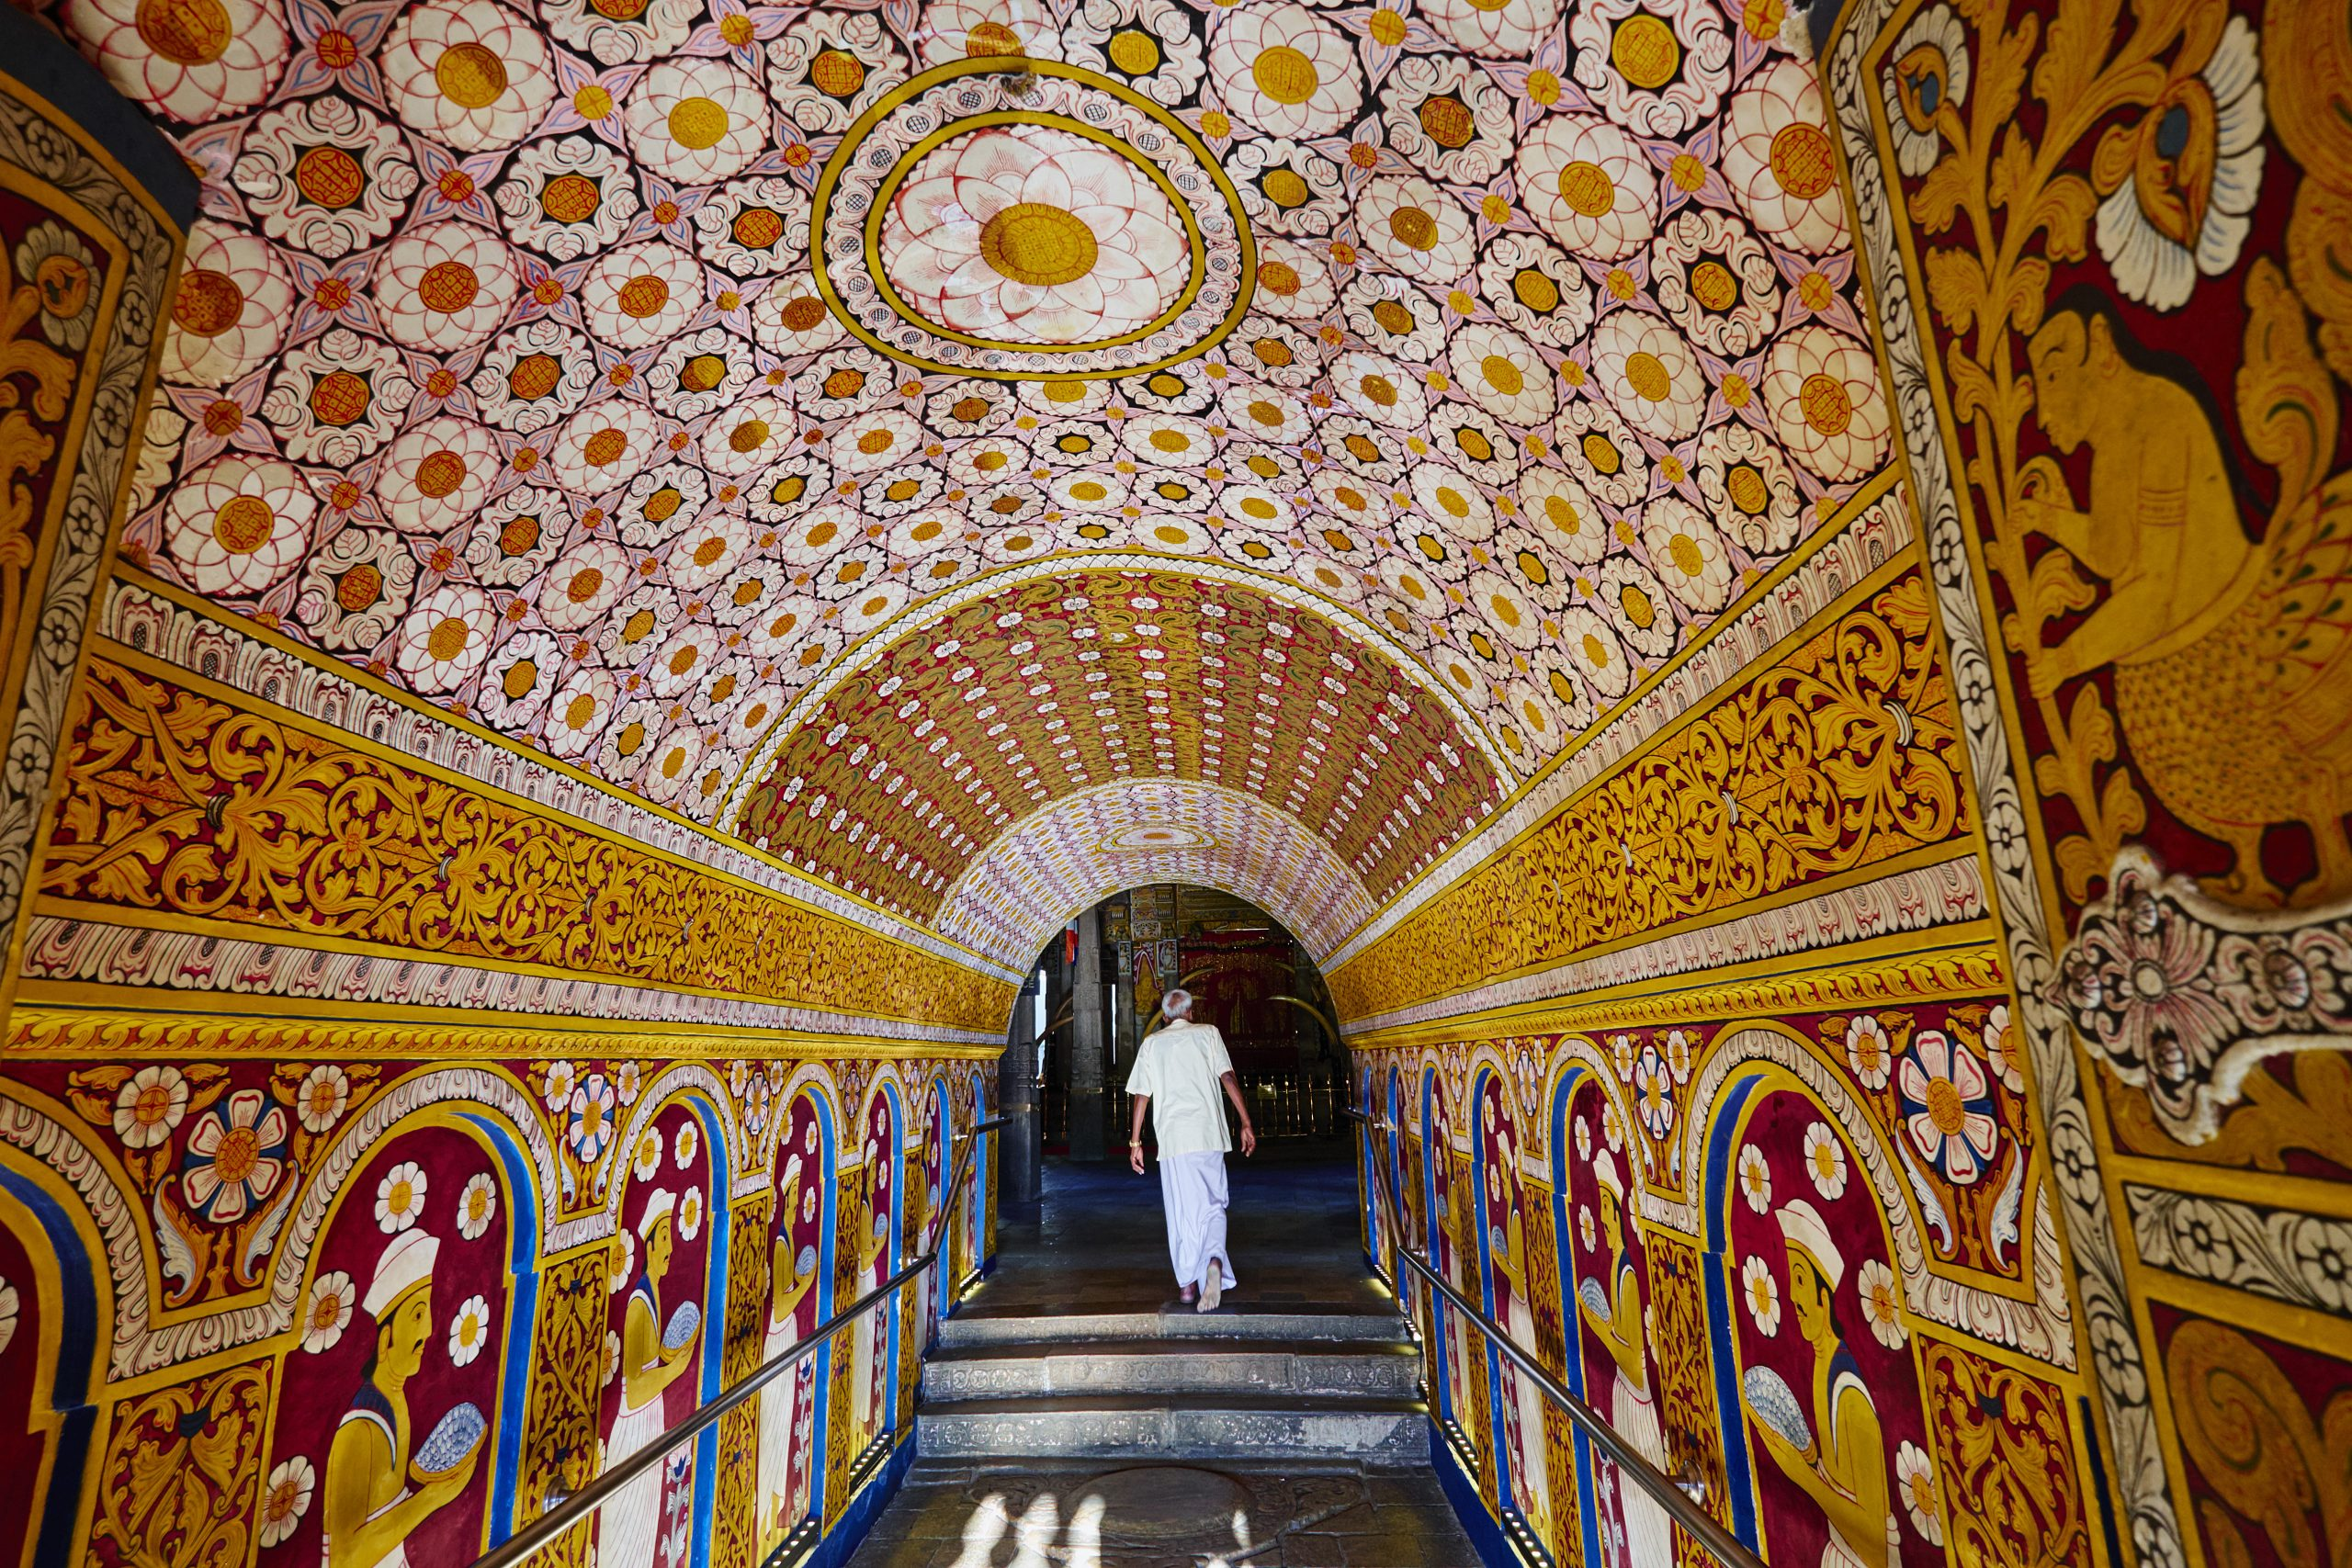 Sri Lanka, Kandy, Tooth's temple